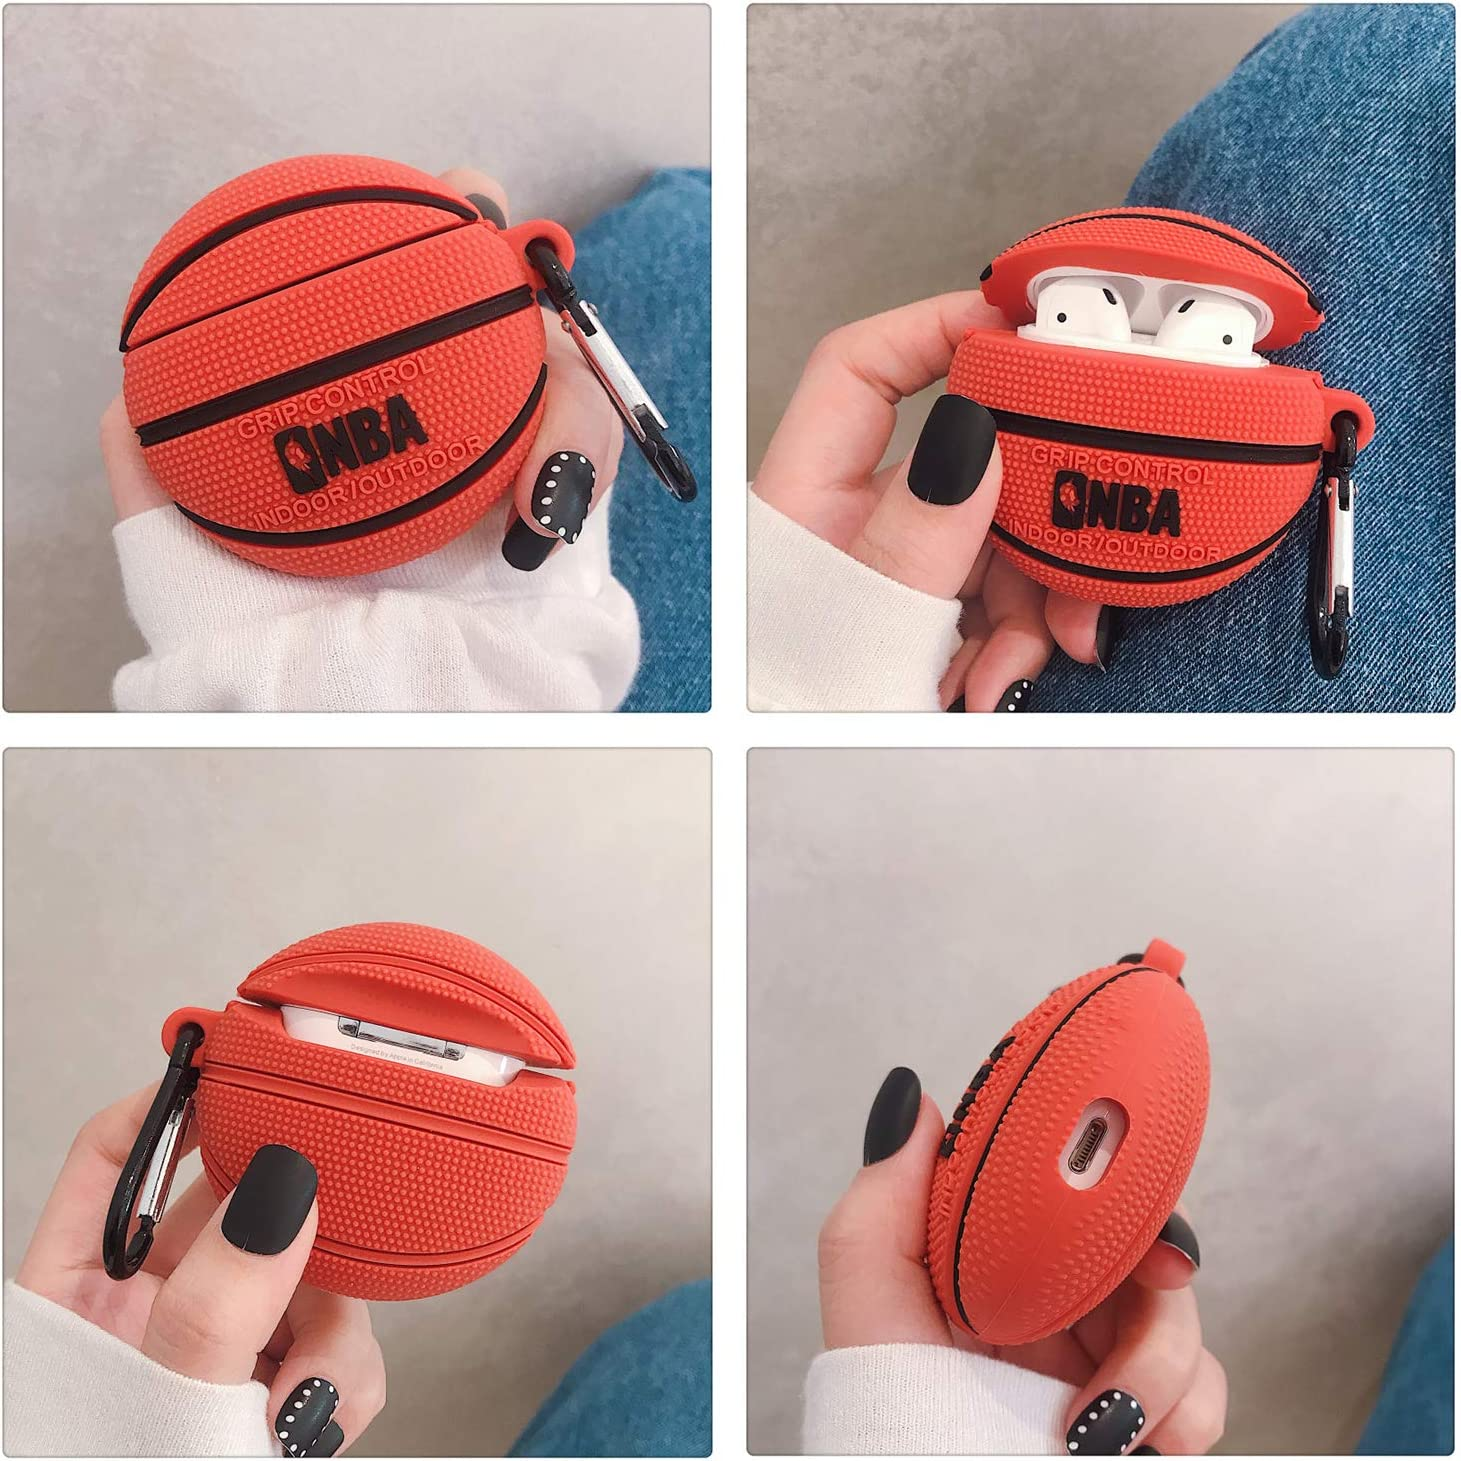 Basketball Airpods Case Dolopow AirPods Accessories Shockproof Protective Premium Silicone Cover Skin for AirPods Charging Case 2 /& 1